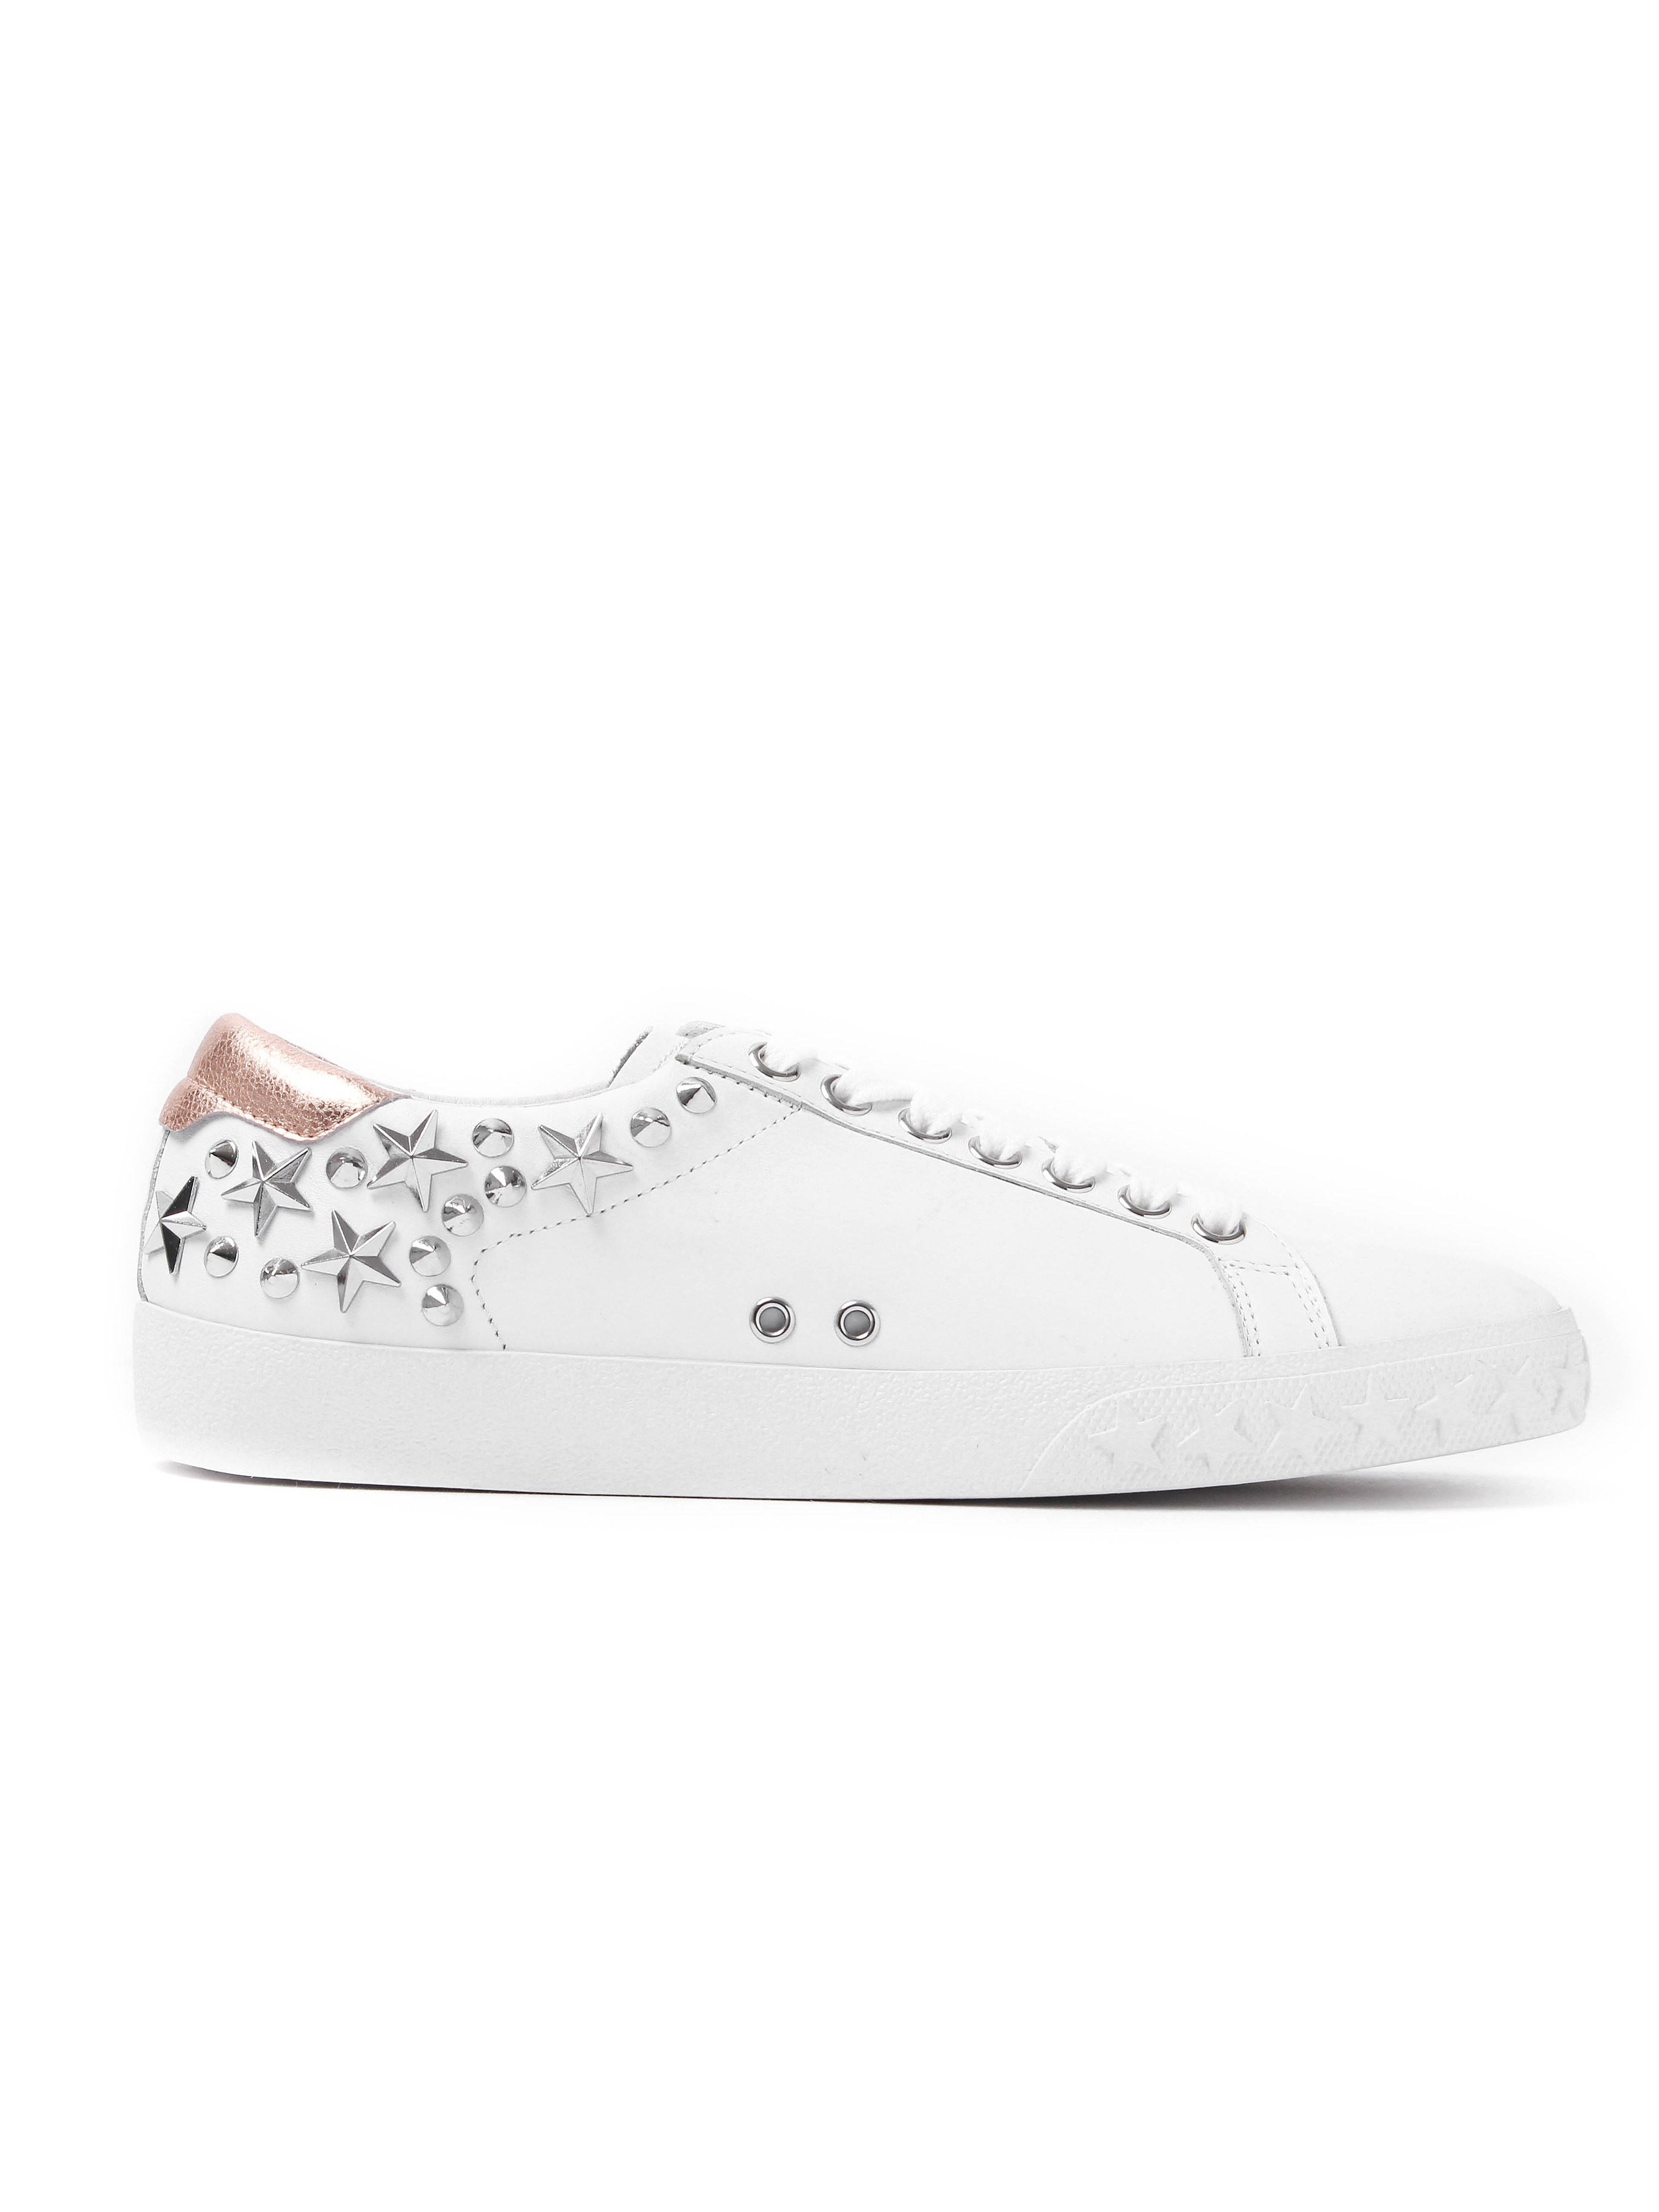 Ash Women's Dazed Leather Trainers - White